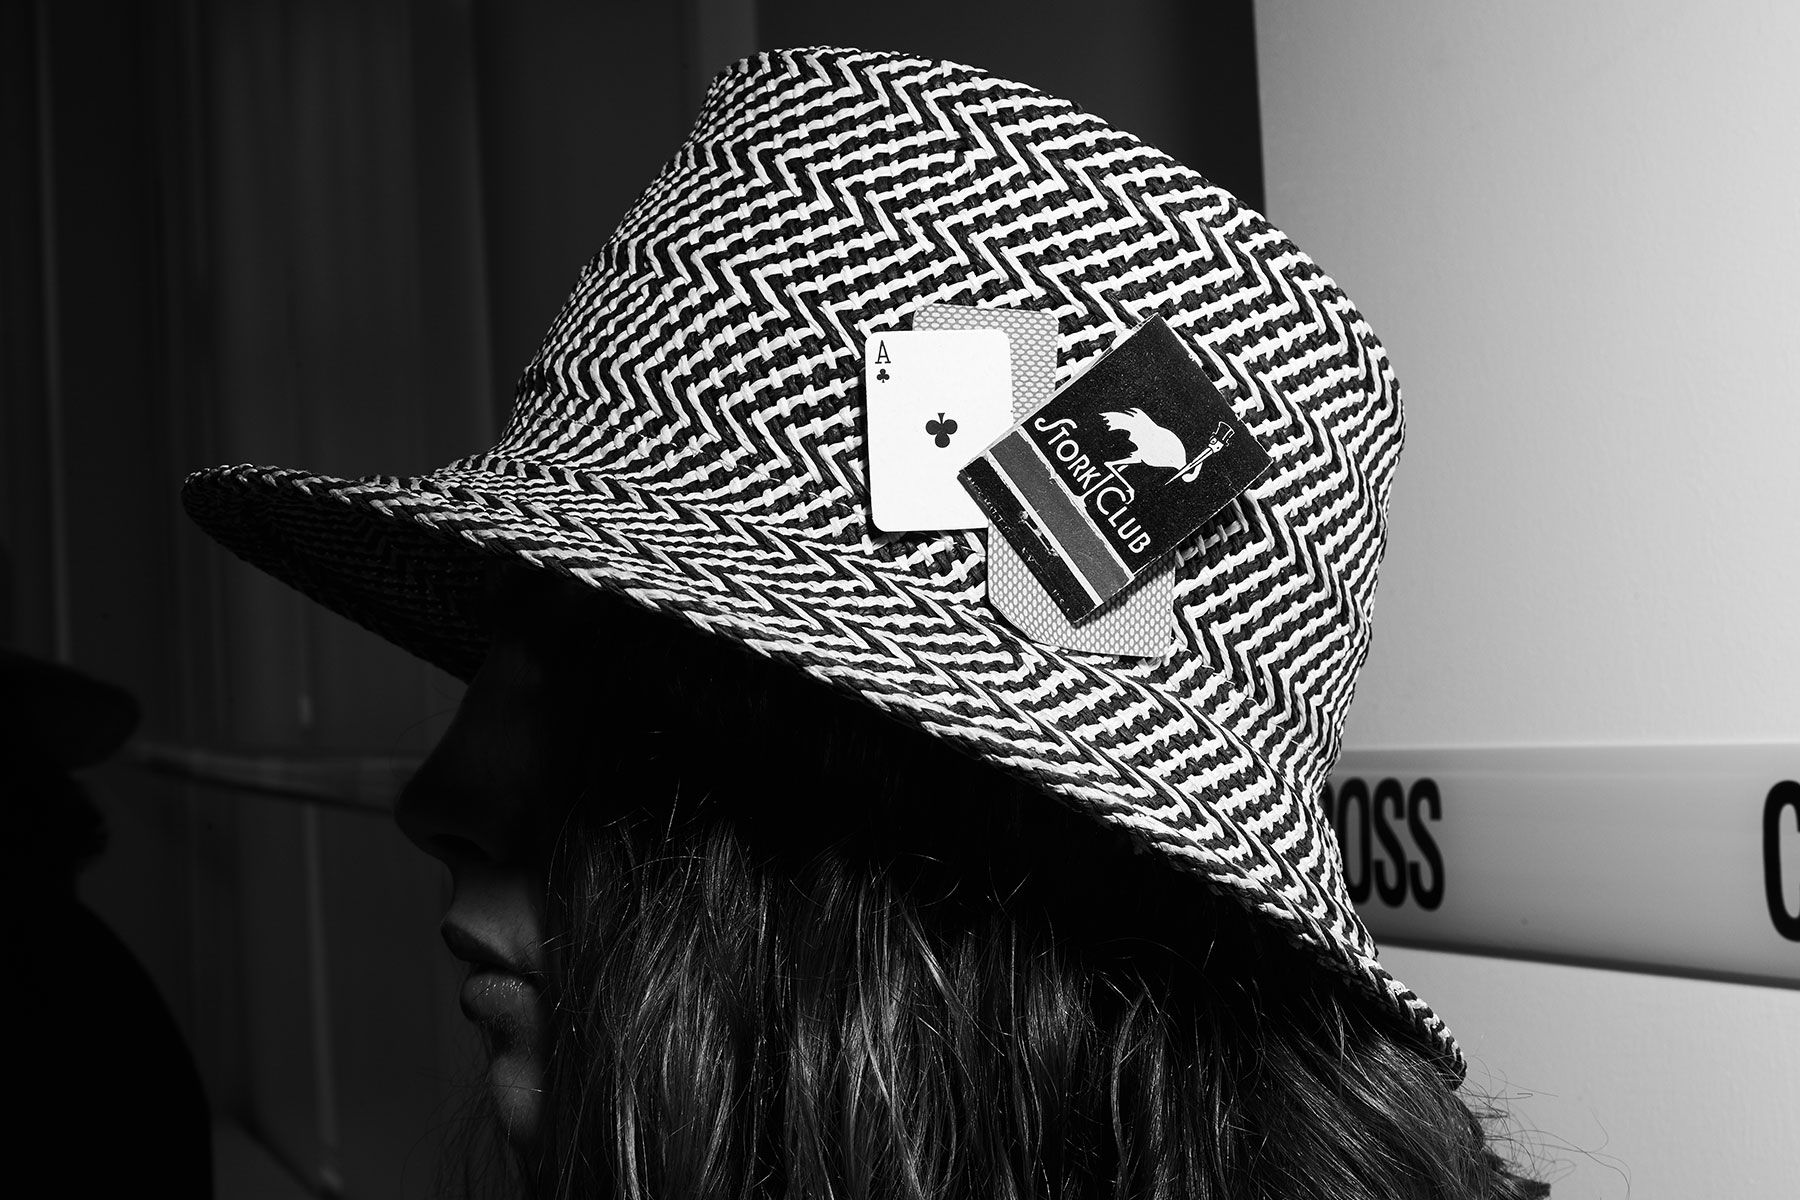 Hat by Rod Keenan New York, backstage at David Hart for Spring 2020. Photography by Alexander Thompson for Ponyboy magazine.